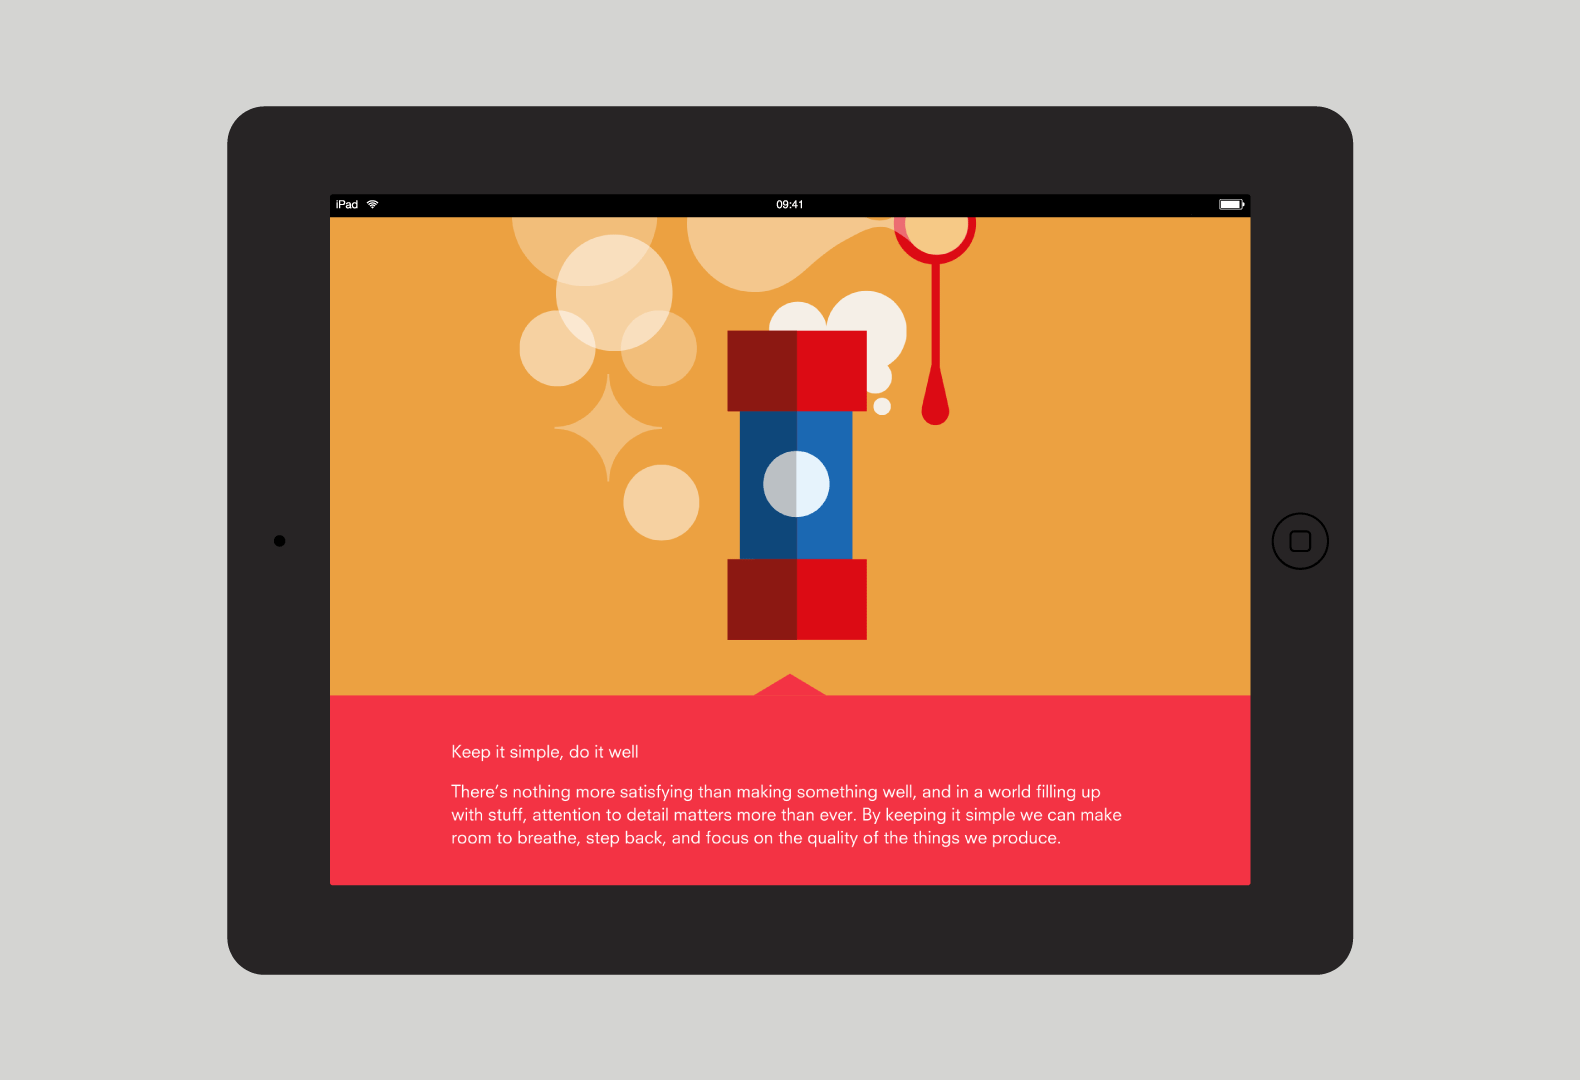 Illustration and text layout on iPad for A Guide to Making Things.